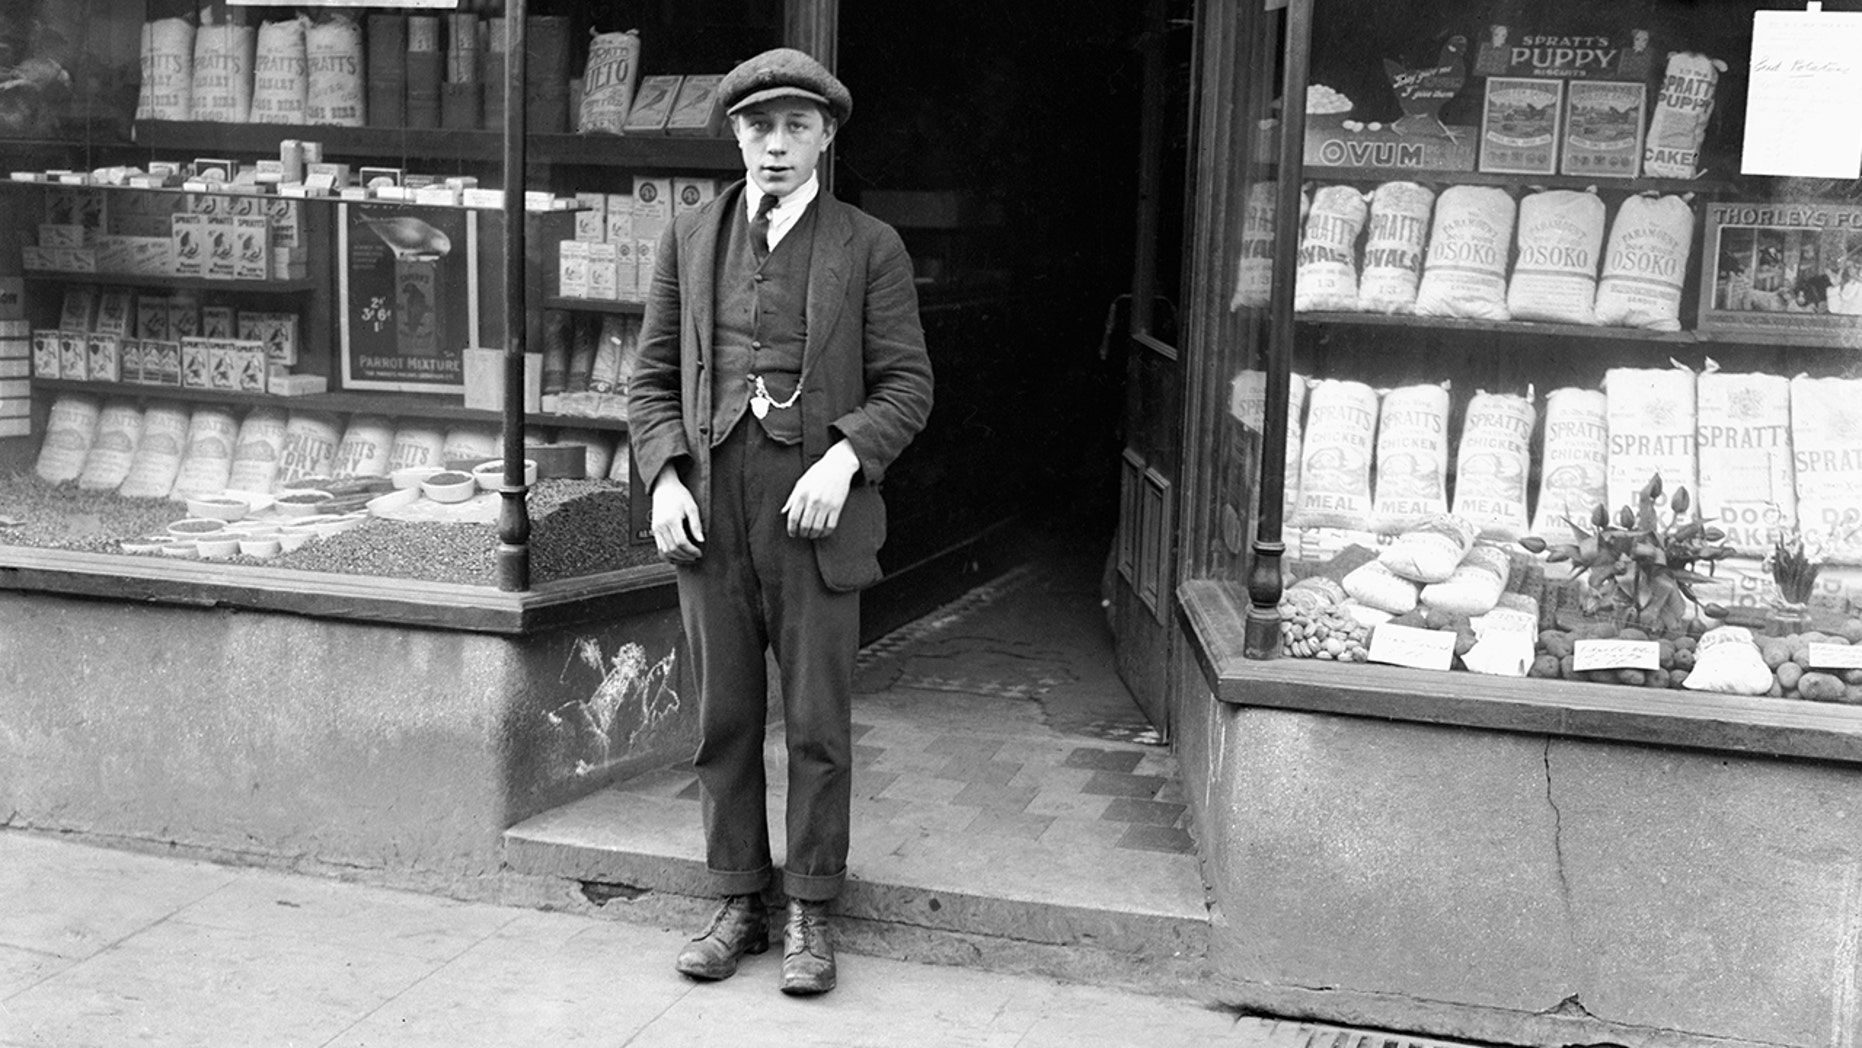 The accused, 15-year-old Harold Jones, was tried and acquitted of Freda's murder and went on to kill Florie Little within a few weeks of his release. Pictured is the accused boy at the time of the inquest into Freda Burnell's murder, standing outside Mortimer's Corn Stores in Somerset Street where he was working when the young girl entered, on an errand for her father. 9th February 1921. (Photo by Daily Mirror/Mirrorpix/Mirrorpix via Getty Images)